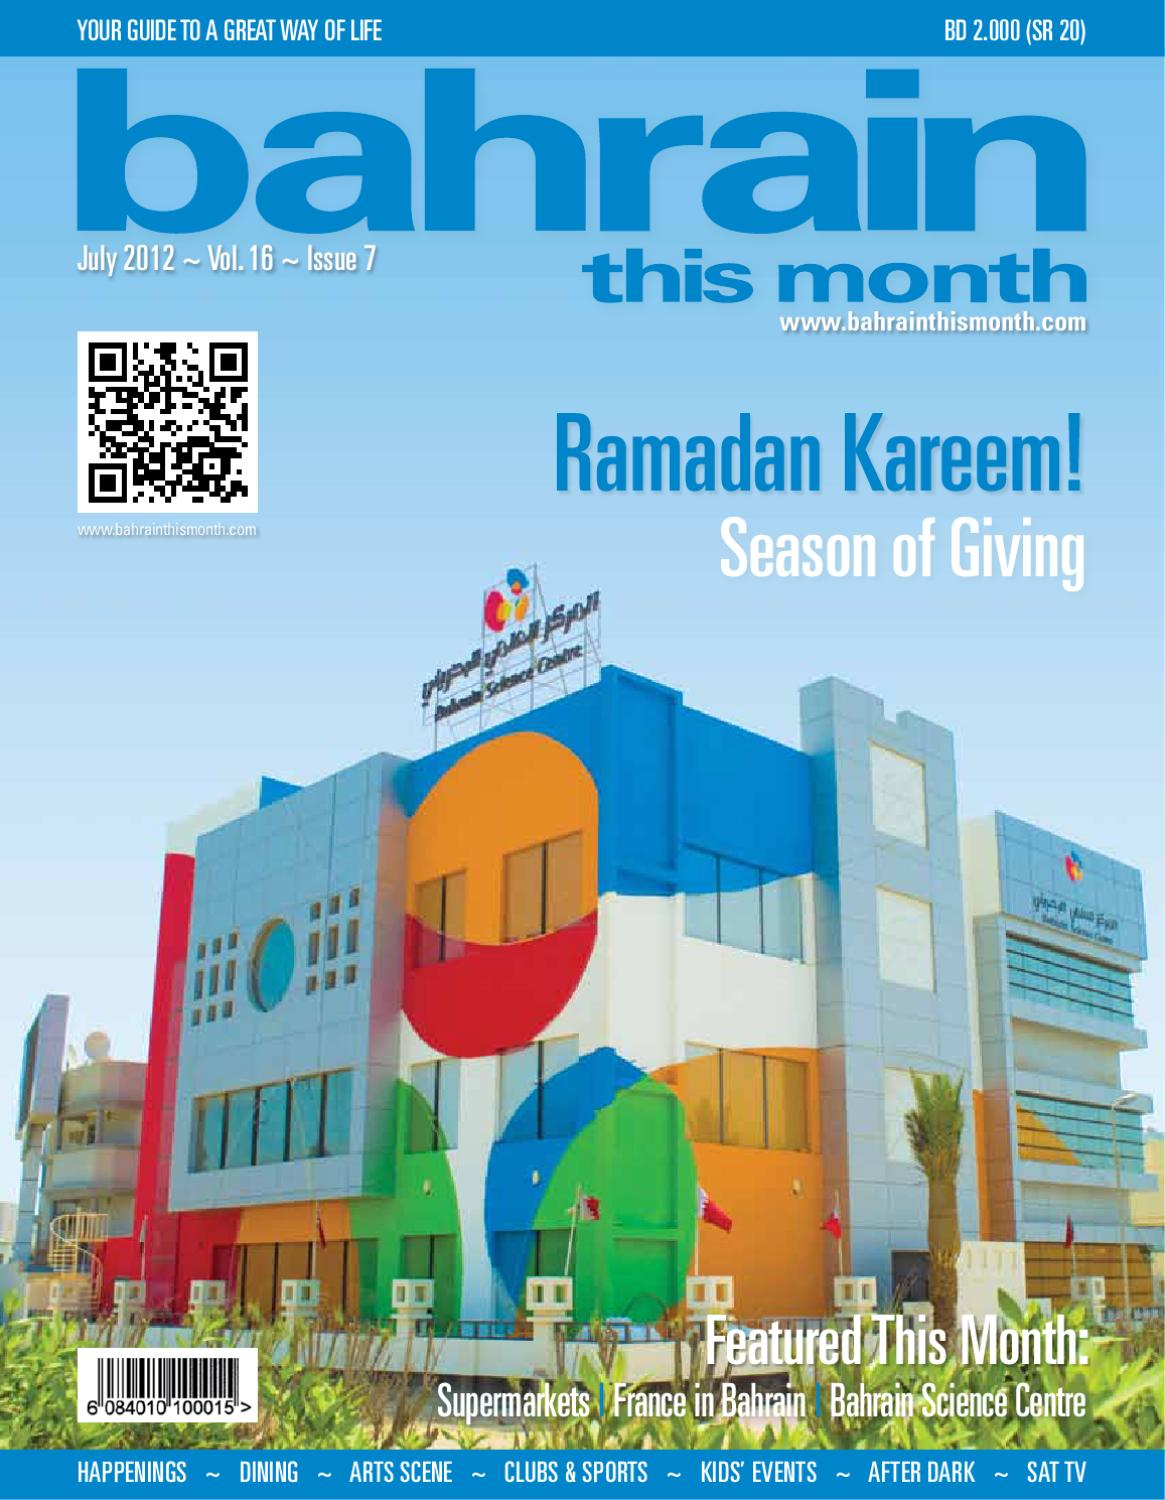 Bahrain This Month - July 2012 by Red House Marketing - issuu